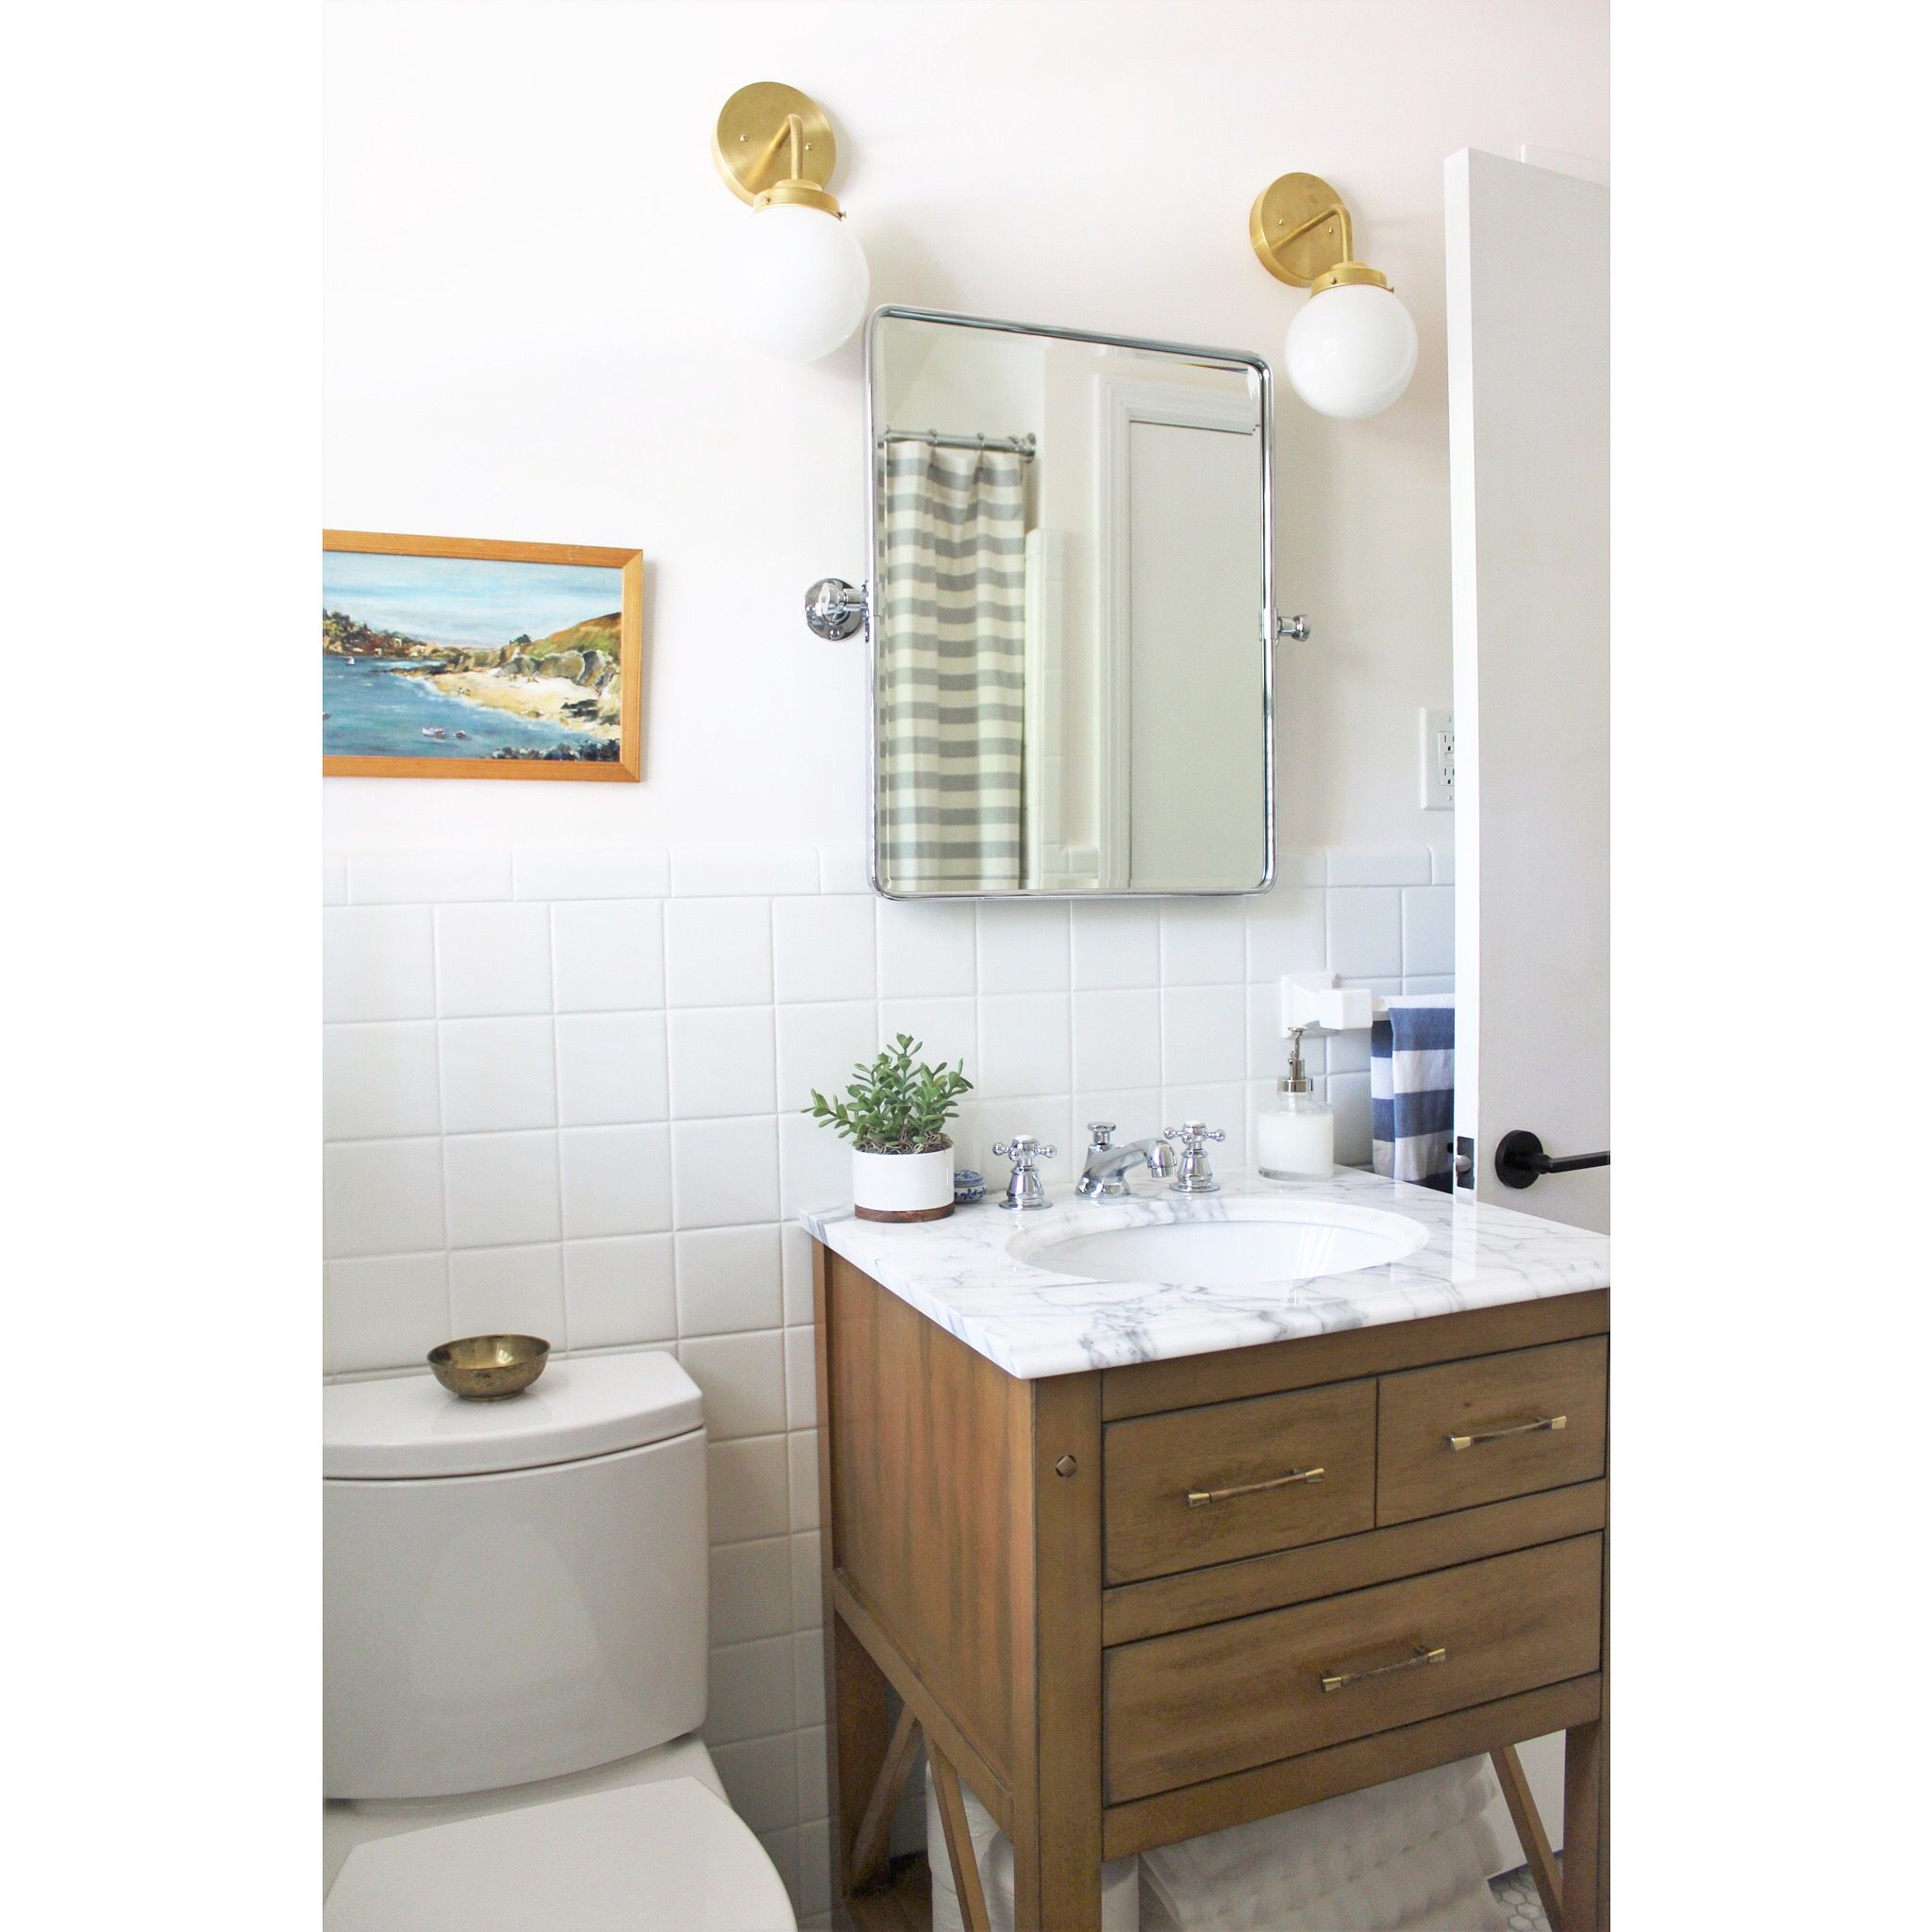 Eclectic mid-century bathroom renovation remodel decor design with ...